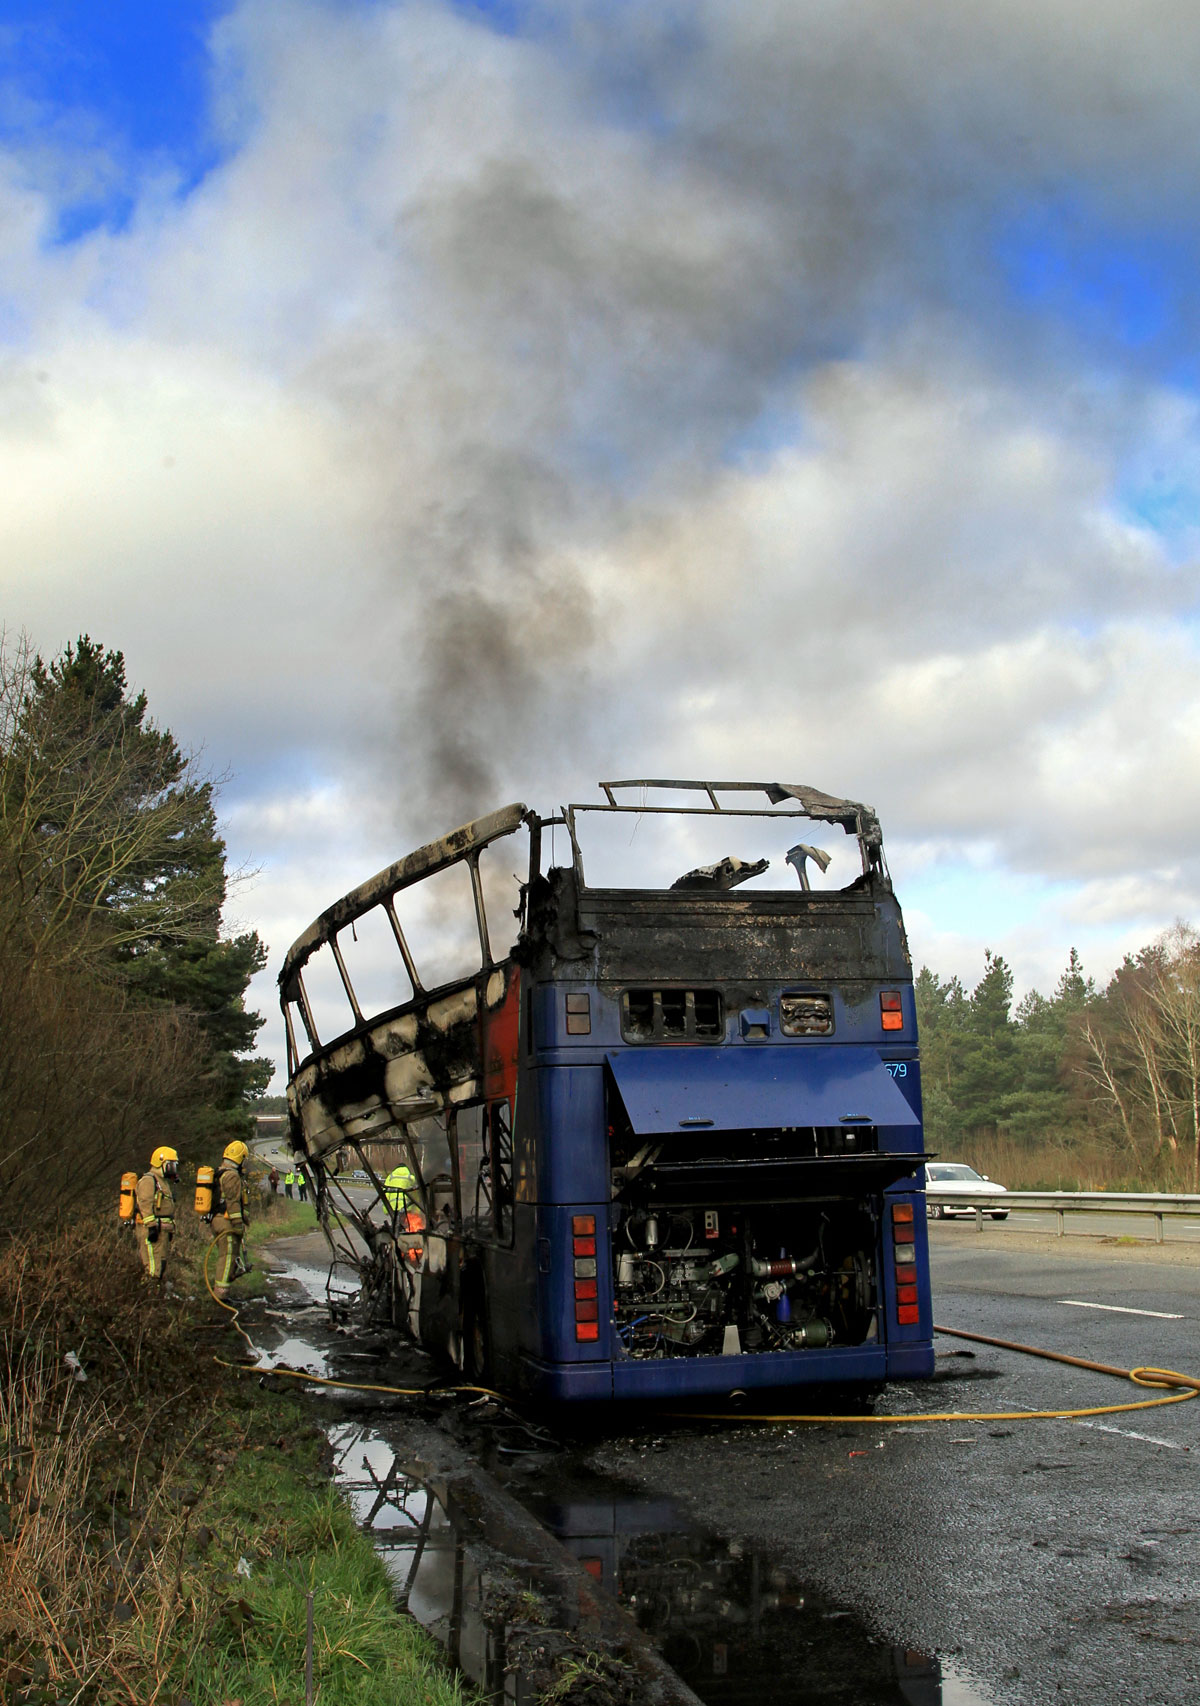 VIDEO: Double decker bus fire causes traffic chaos on the A338 Spur Road